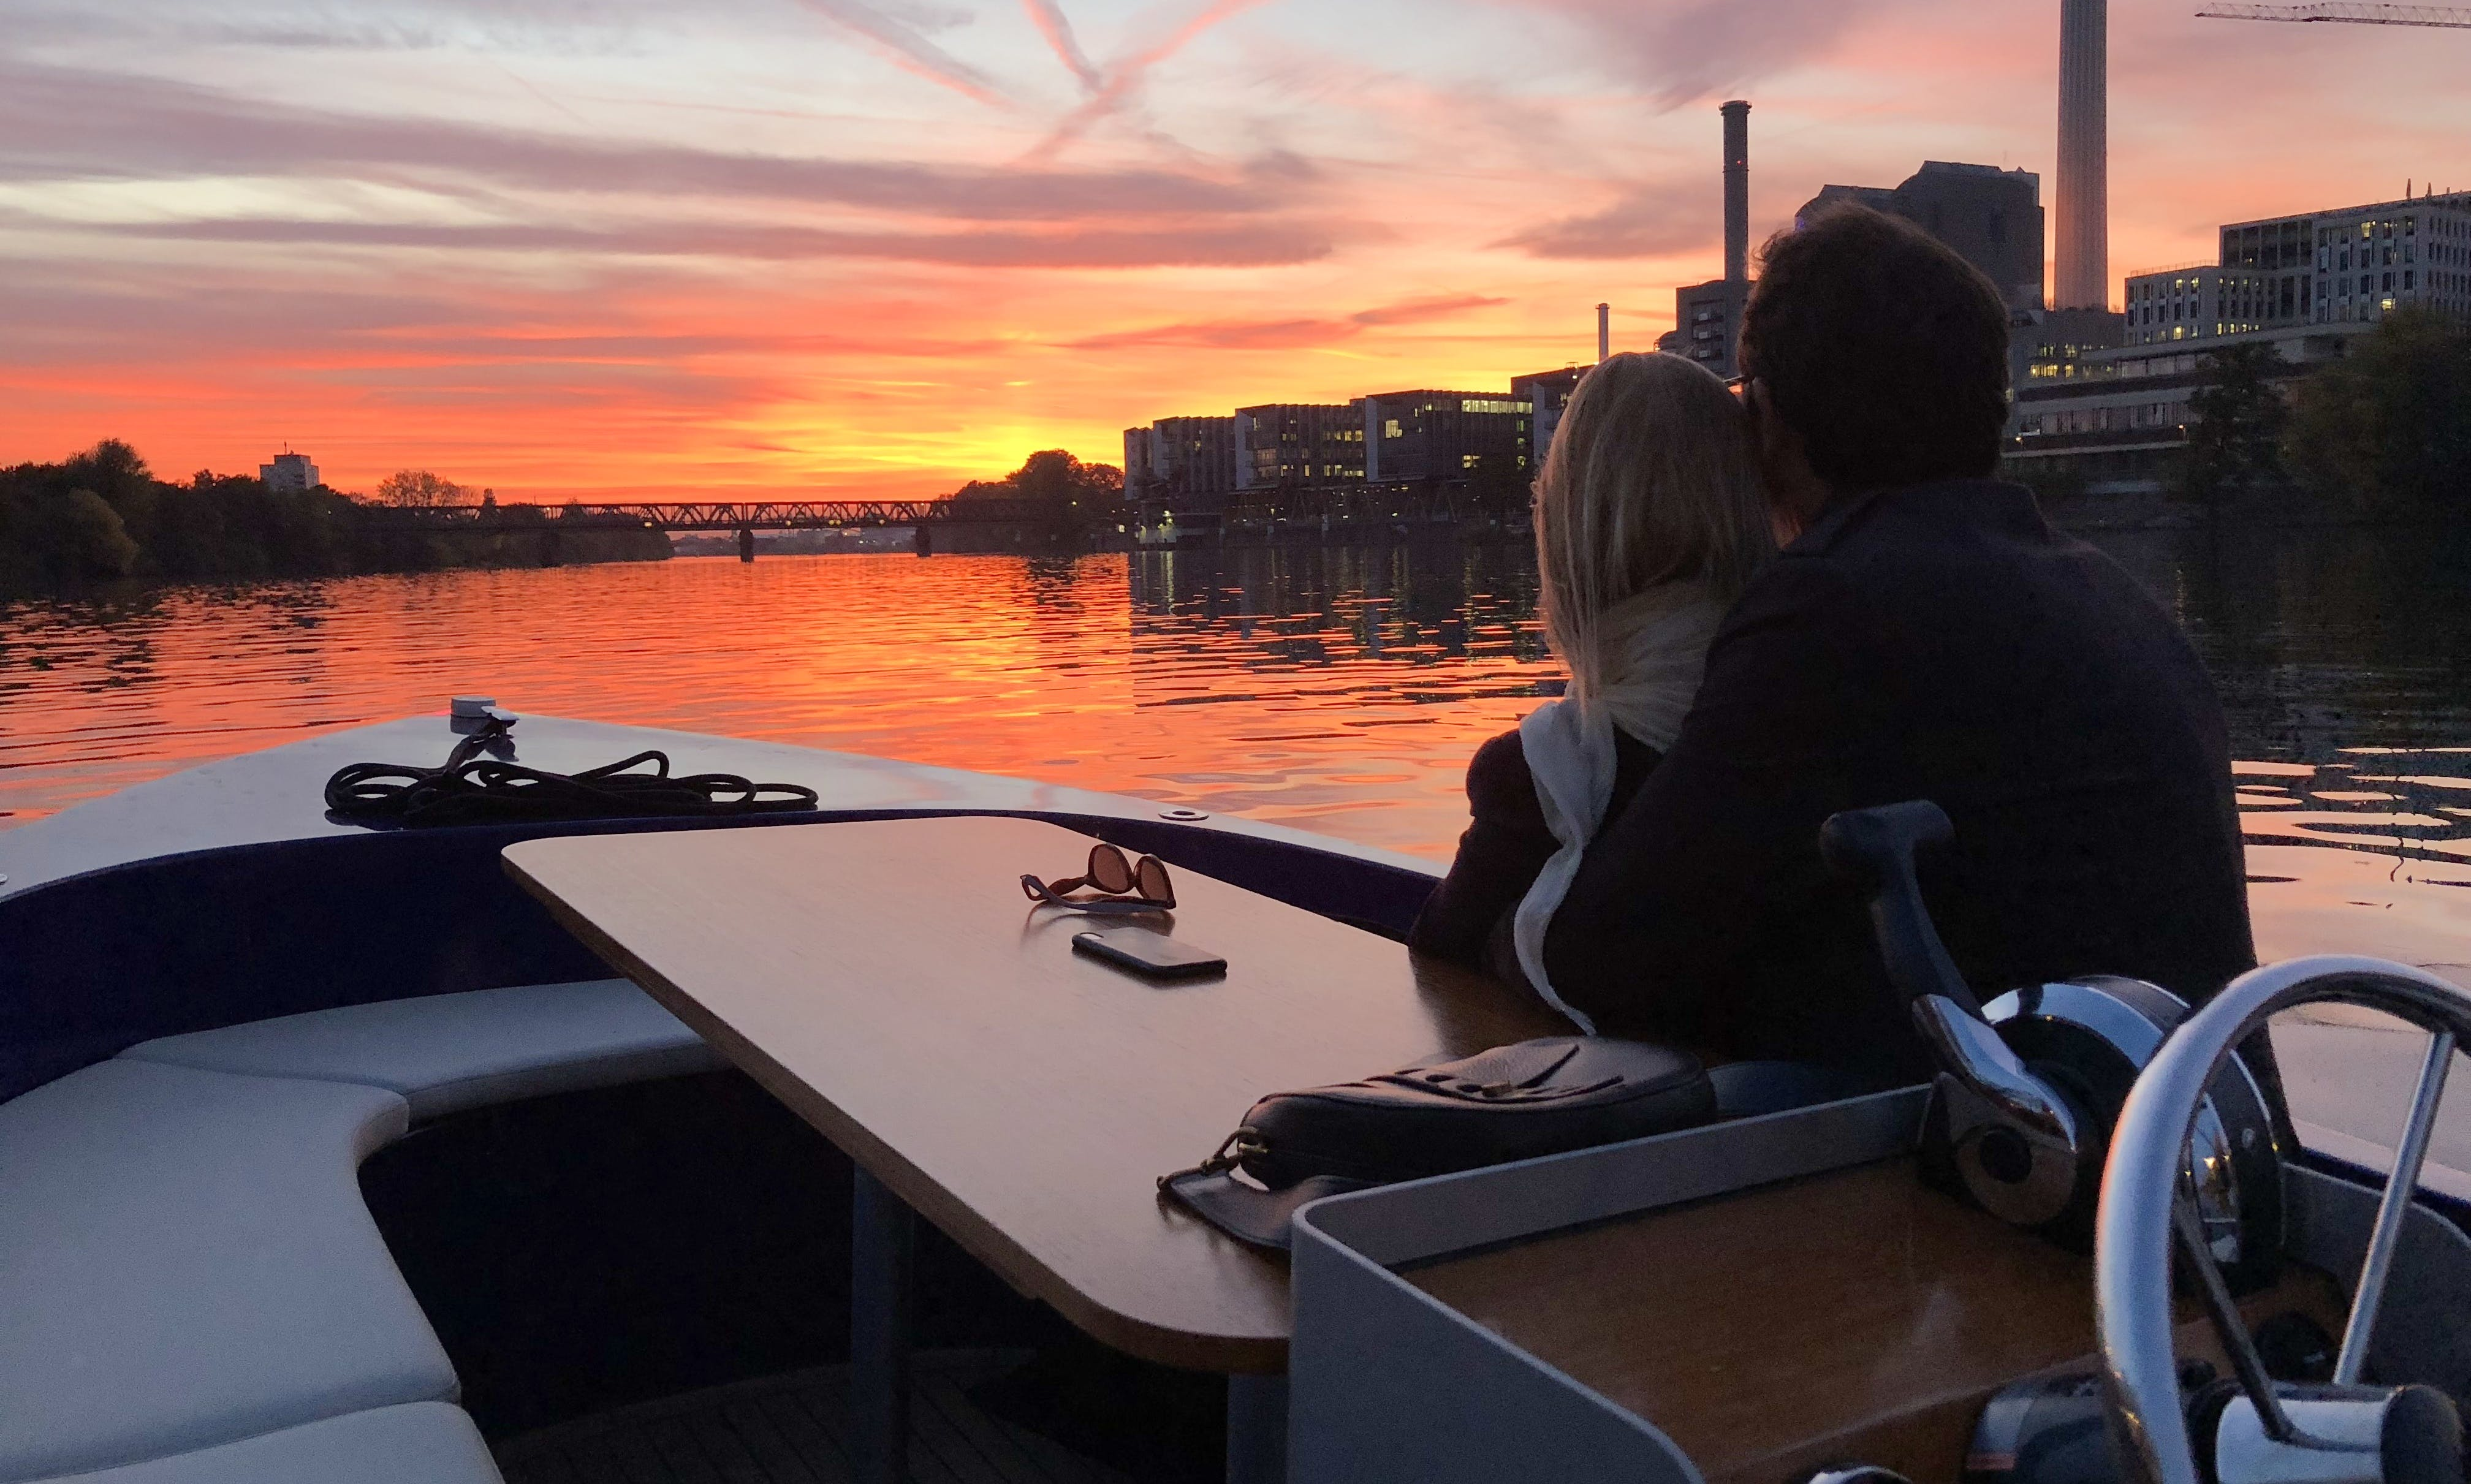 Romantic Boattour for 2 in Frankfurt am Main, Germany